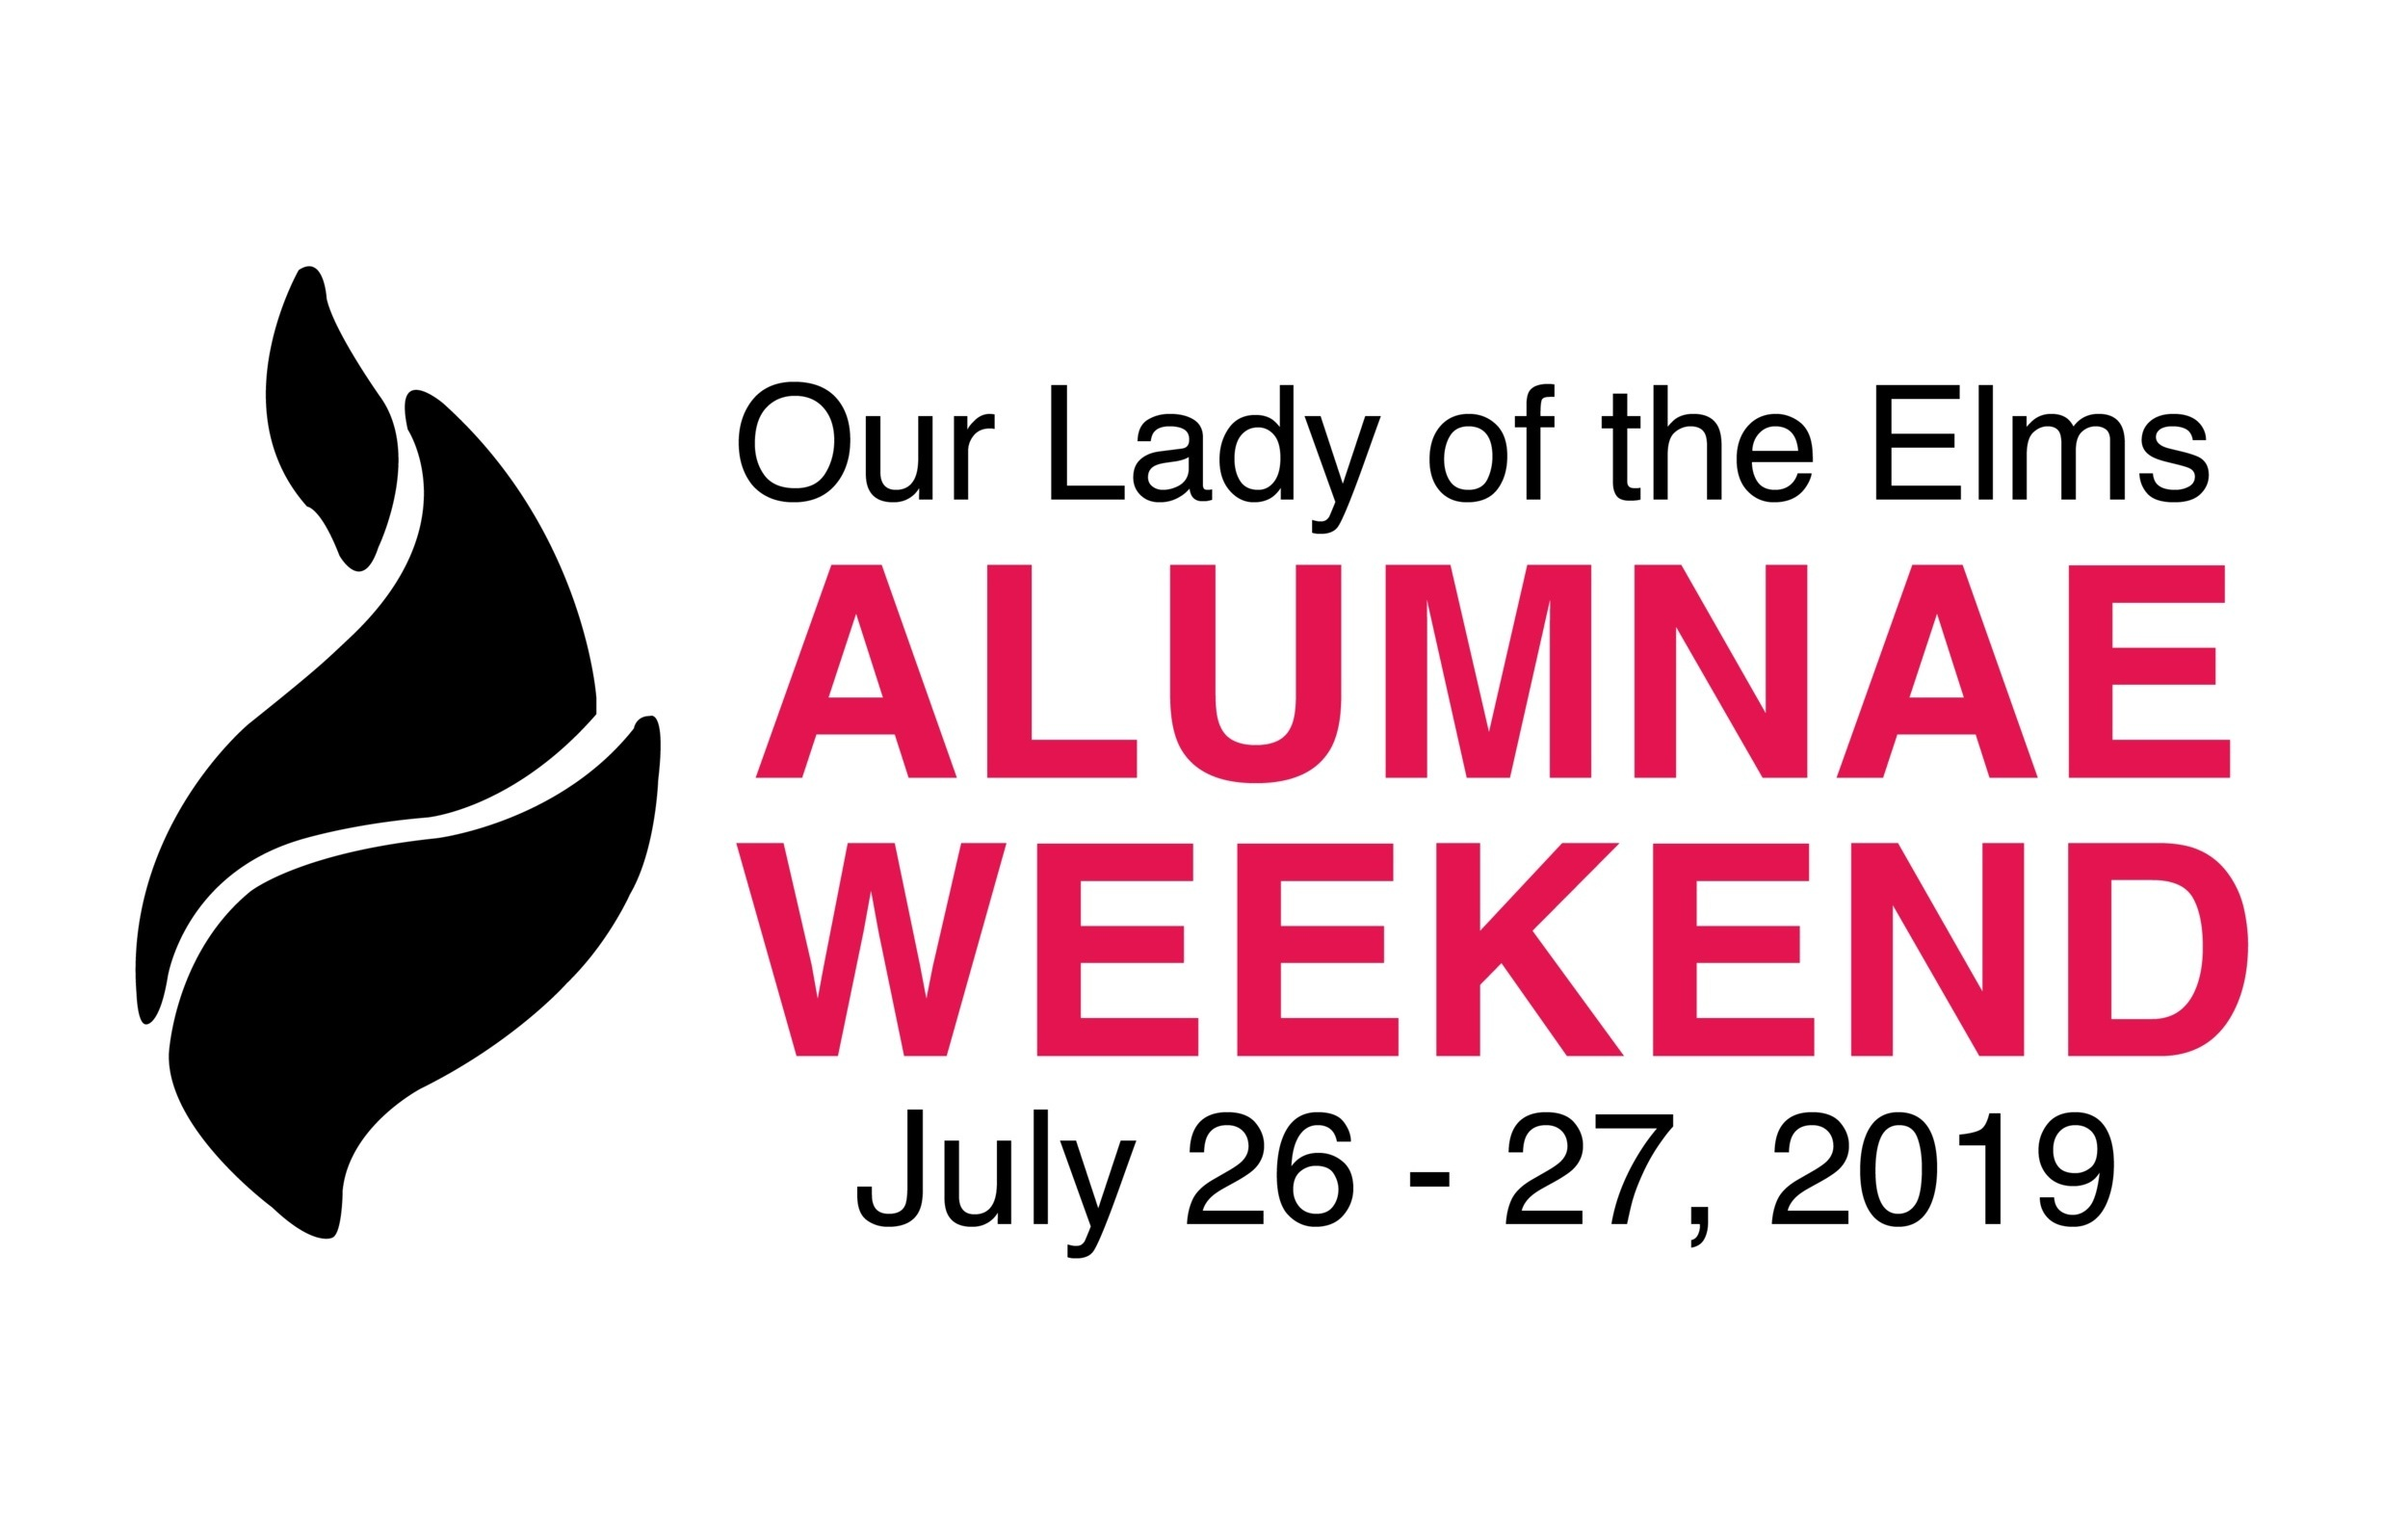 RSVP - Our Lady of the Elms School Class will be celebrating class reunions this summer! Will you plan to join us for Alumnae Weekend on July 26-27?